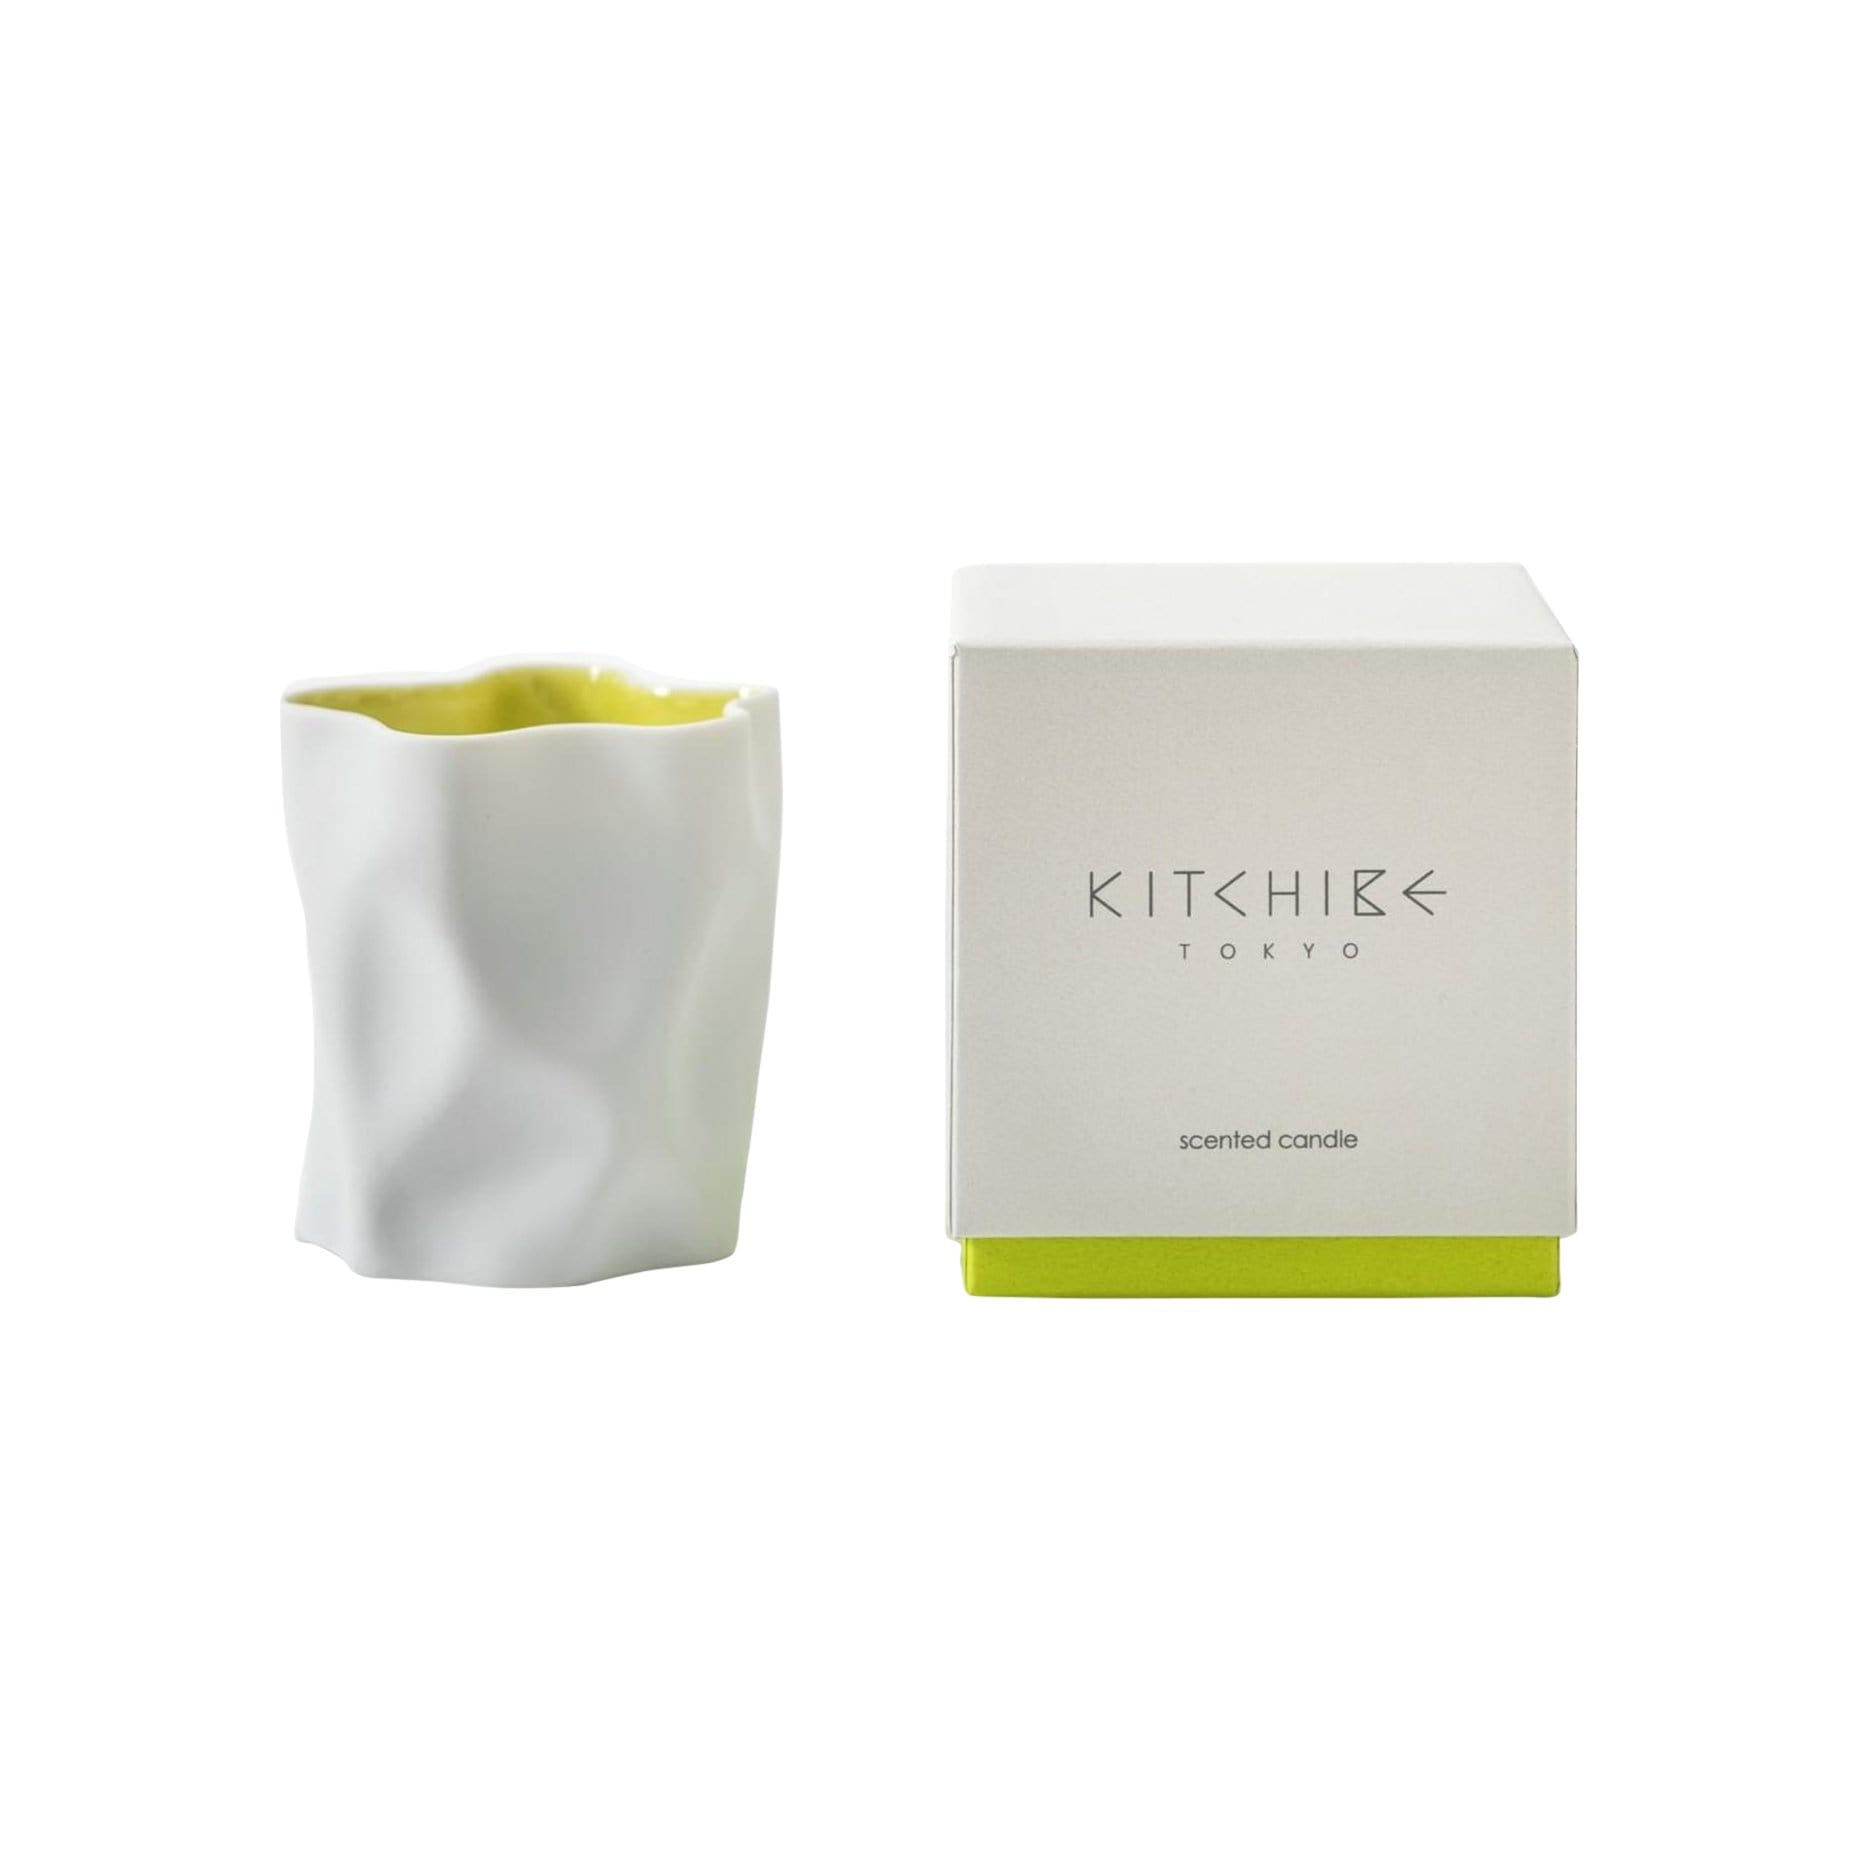 Kitchibe Candles, Diffusers + Incense Yuzu Crinkle Candle